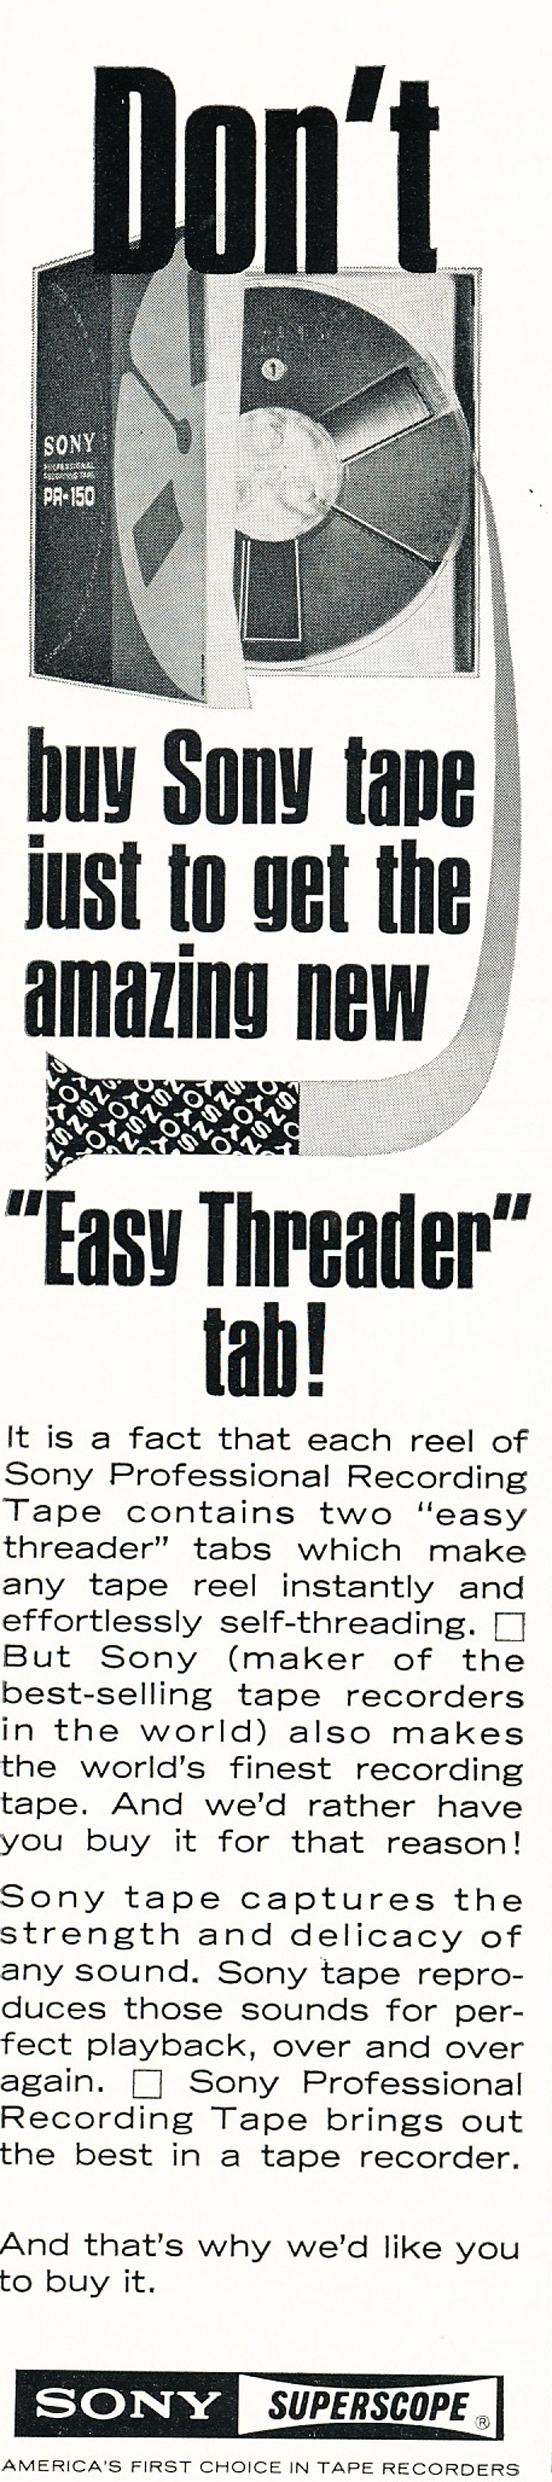 1966 ad for Sony recording tape in Reel2ReelTexas.com vintage reel to reel tape recorder collection